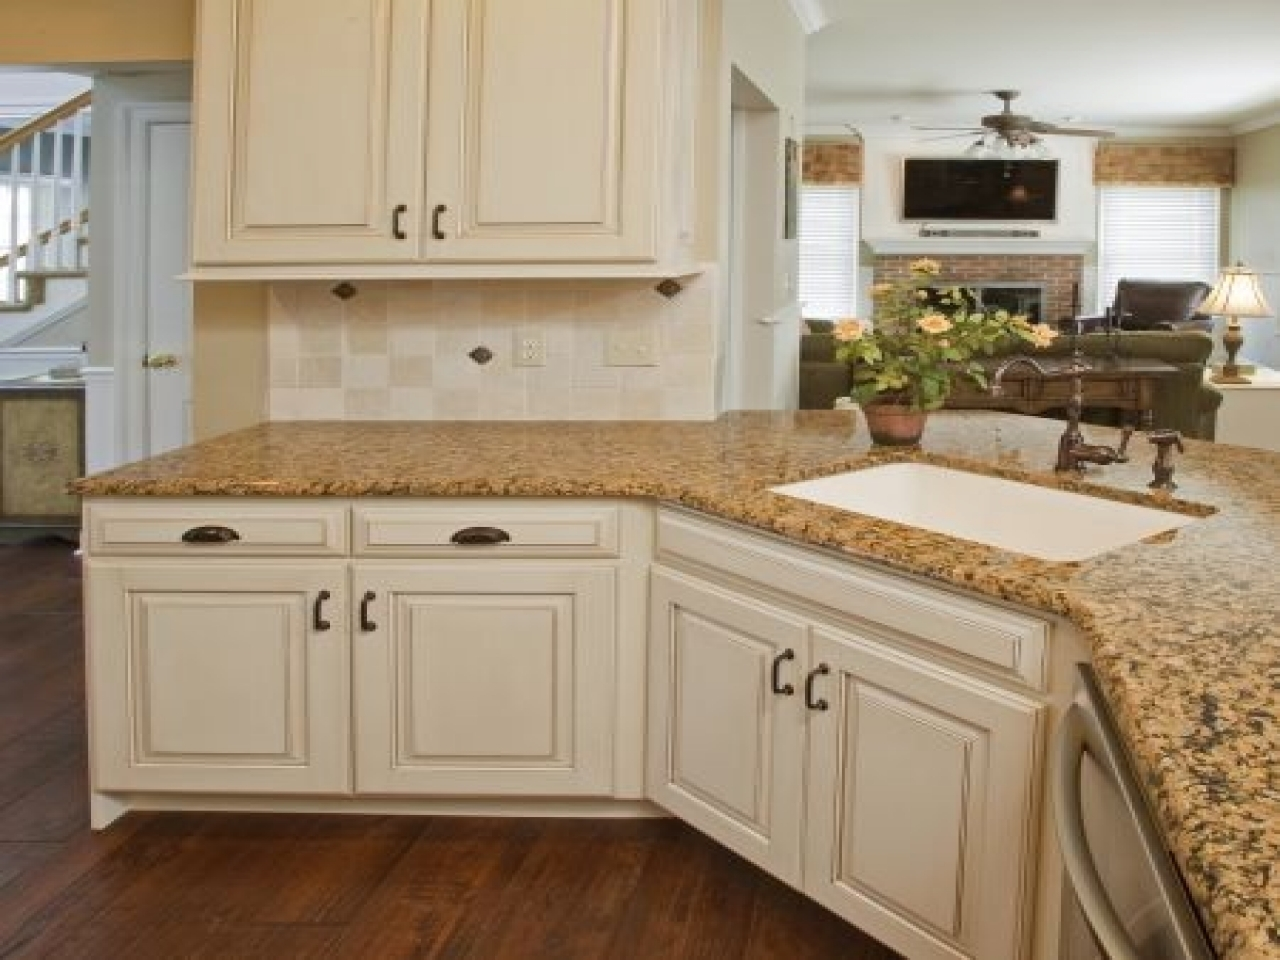 Refacing Kitchen Cabinets Antique White